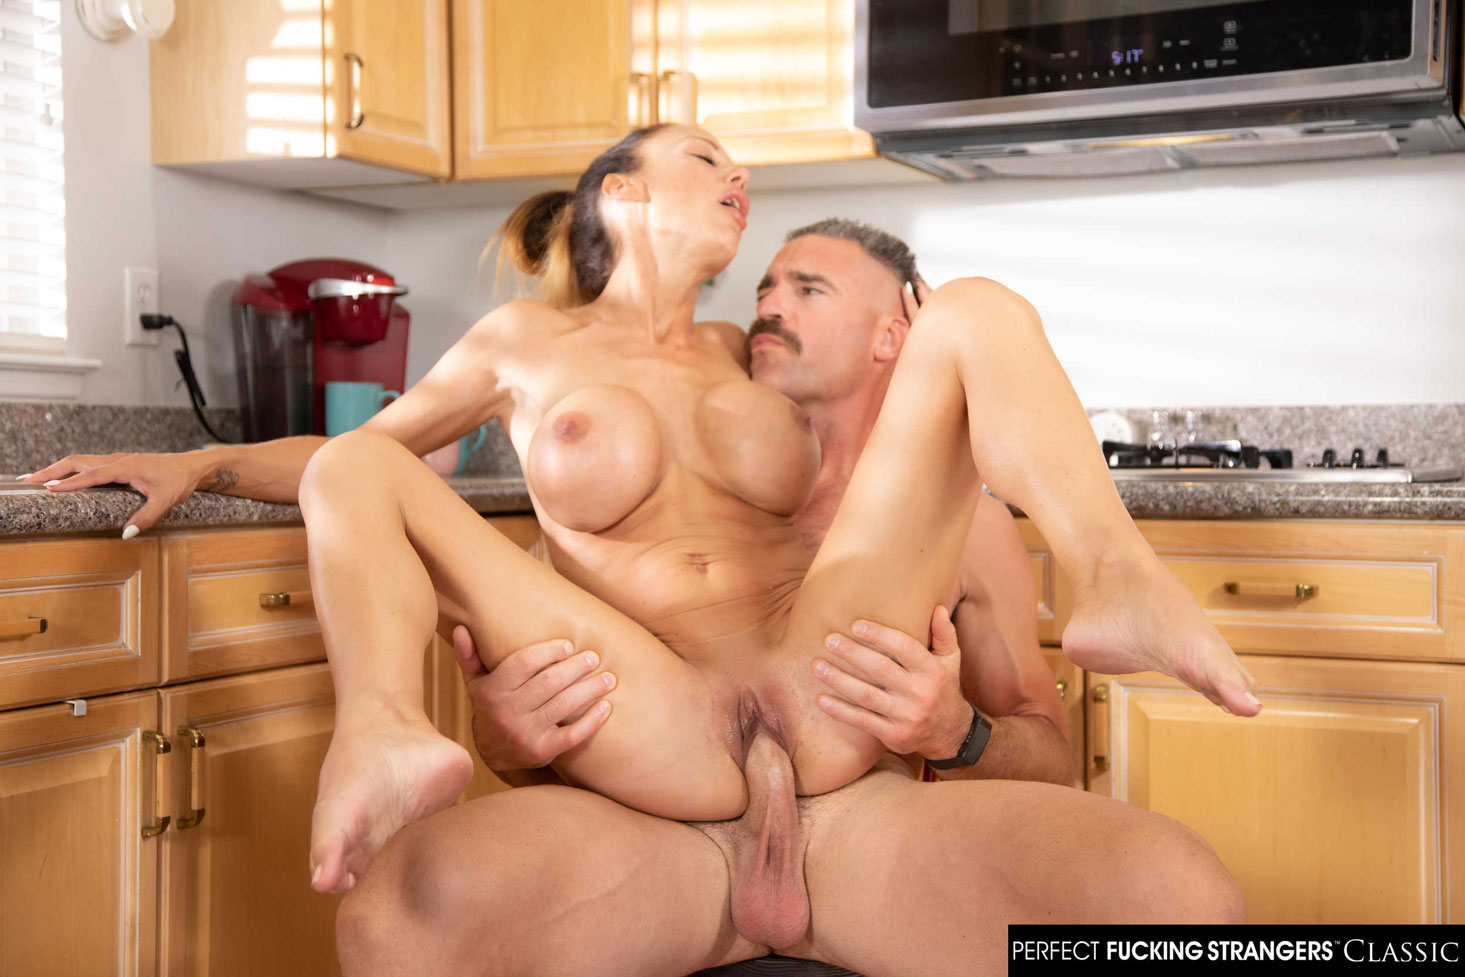 Naughty America - McKenzie Lee Cheating Wife in Action 9